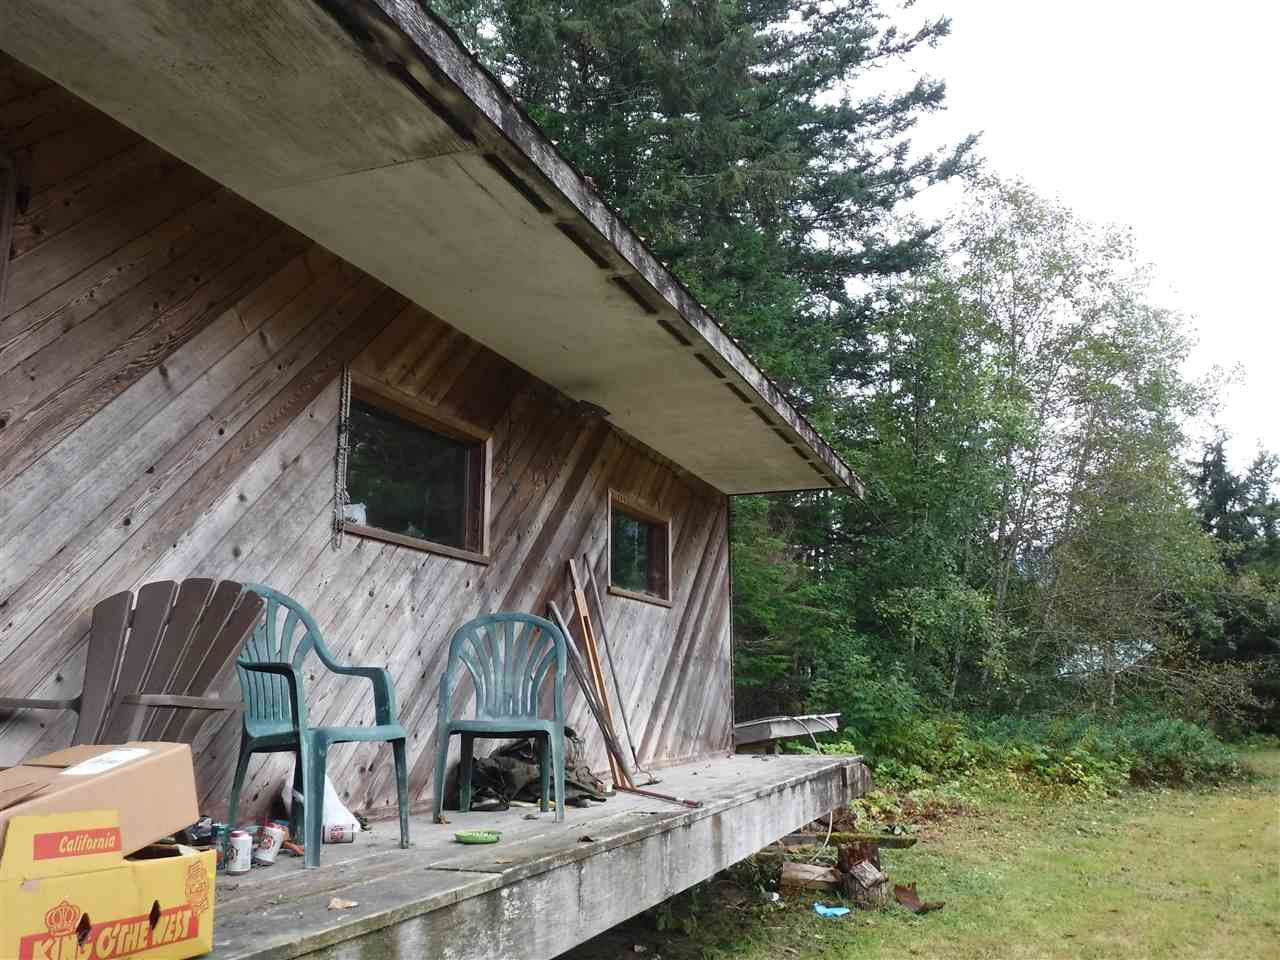 Photo 4: Photos: 2498 DOUGLAS Drive in Bella Coola: Bella Coola/Hagensborg House for sale (Williams Lake (Zone 27))  : MLS®# R2458254